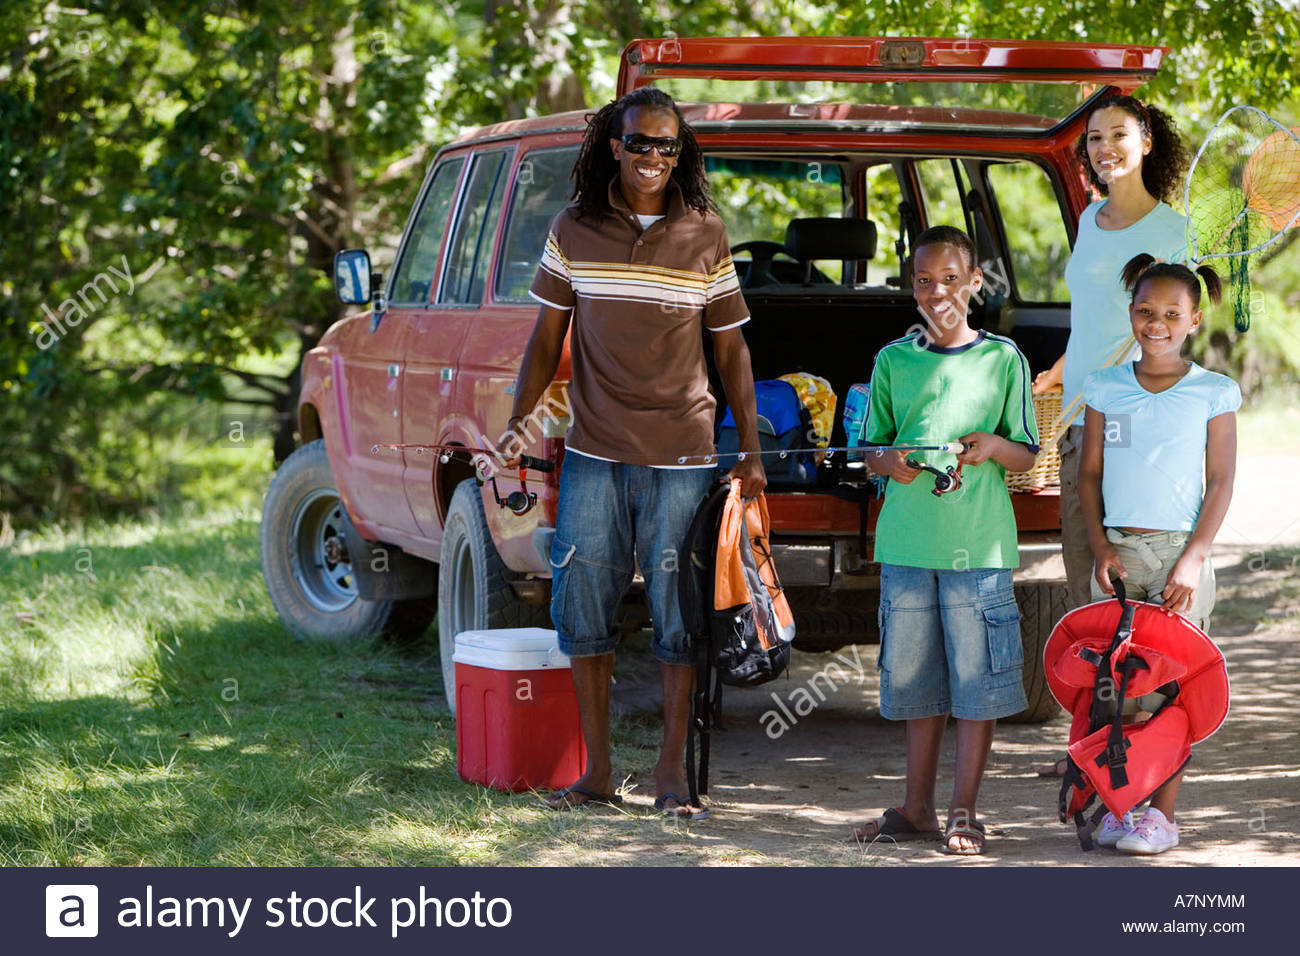 Family unloading parked SUV on camping trip girl 7 9 holding life jacket smiling portrait - Stock Image